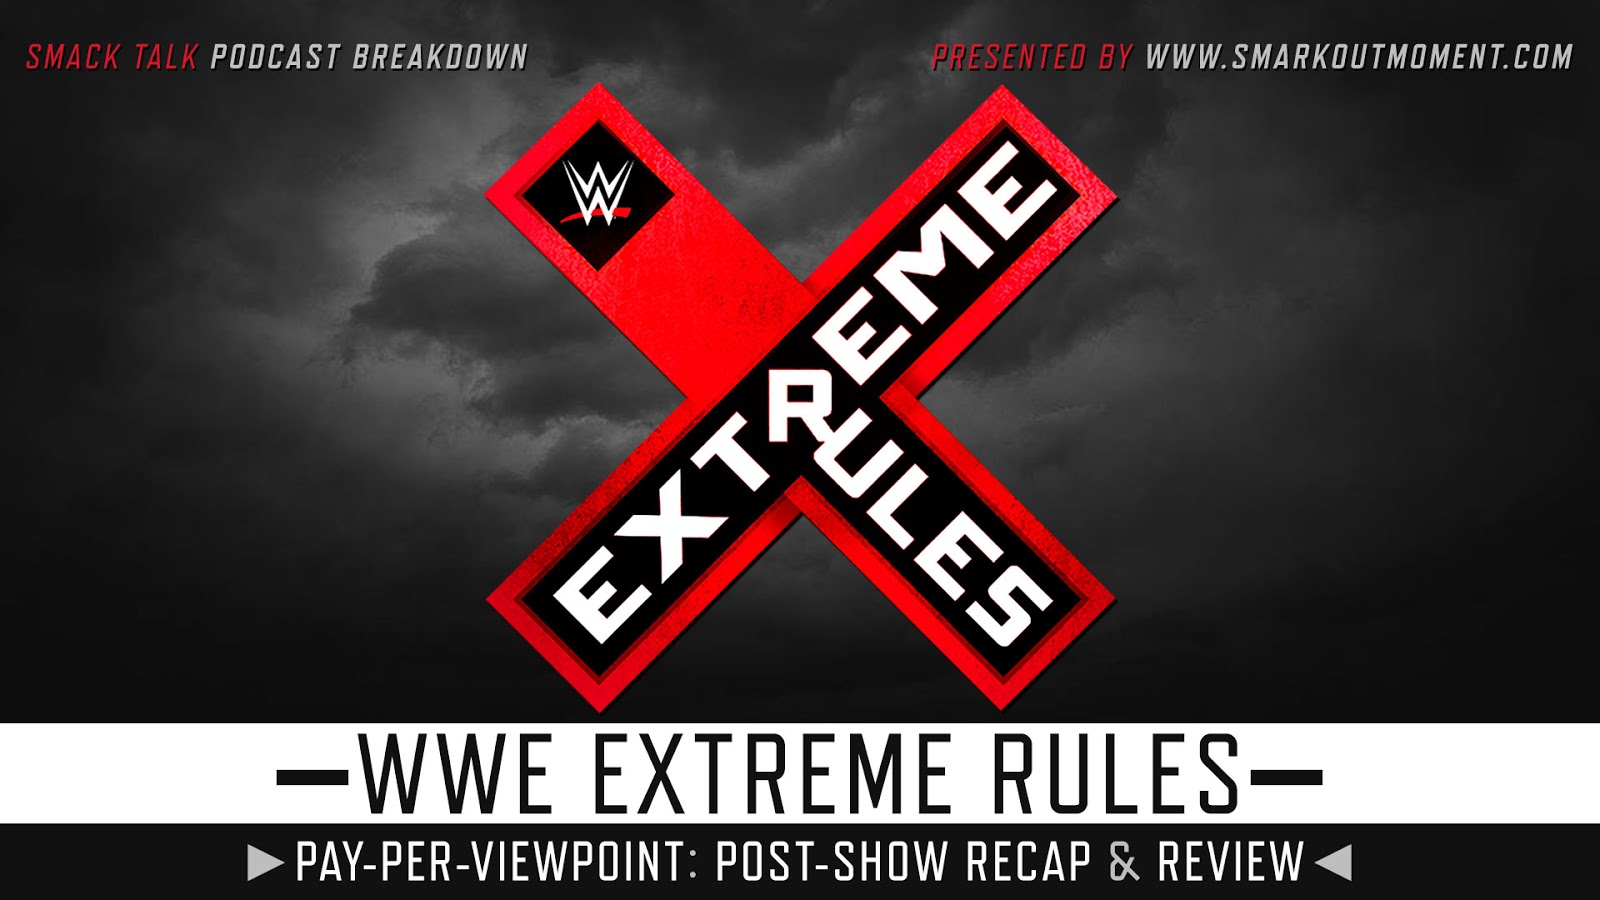 WWE Extreme Rules 2019 Recap and Review Podcast